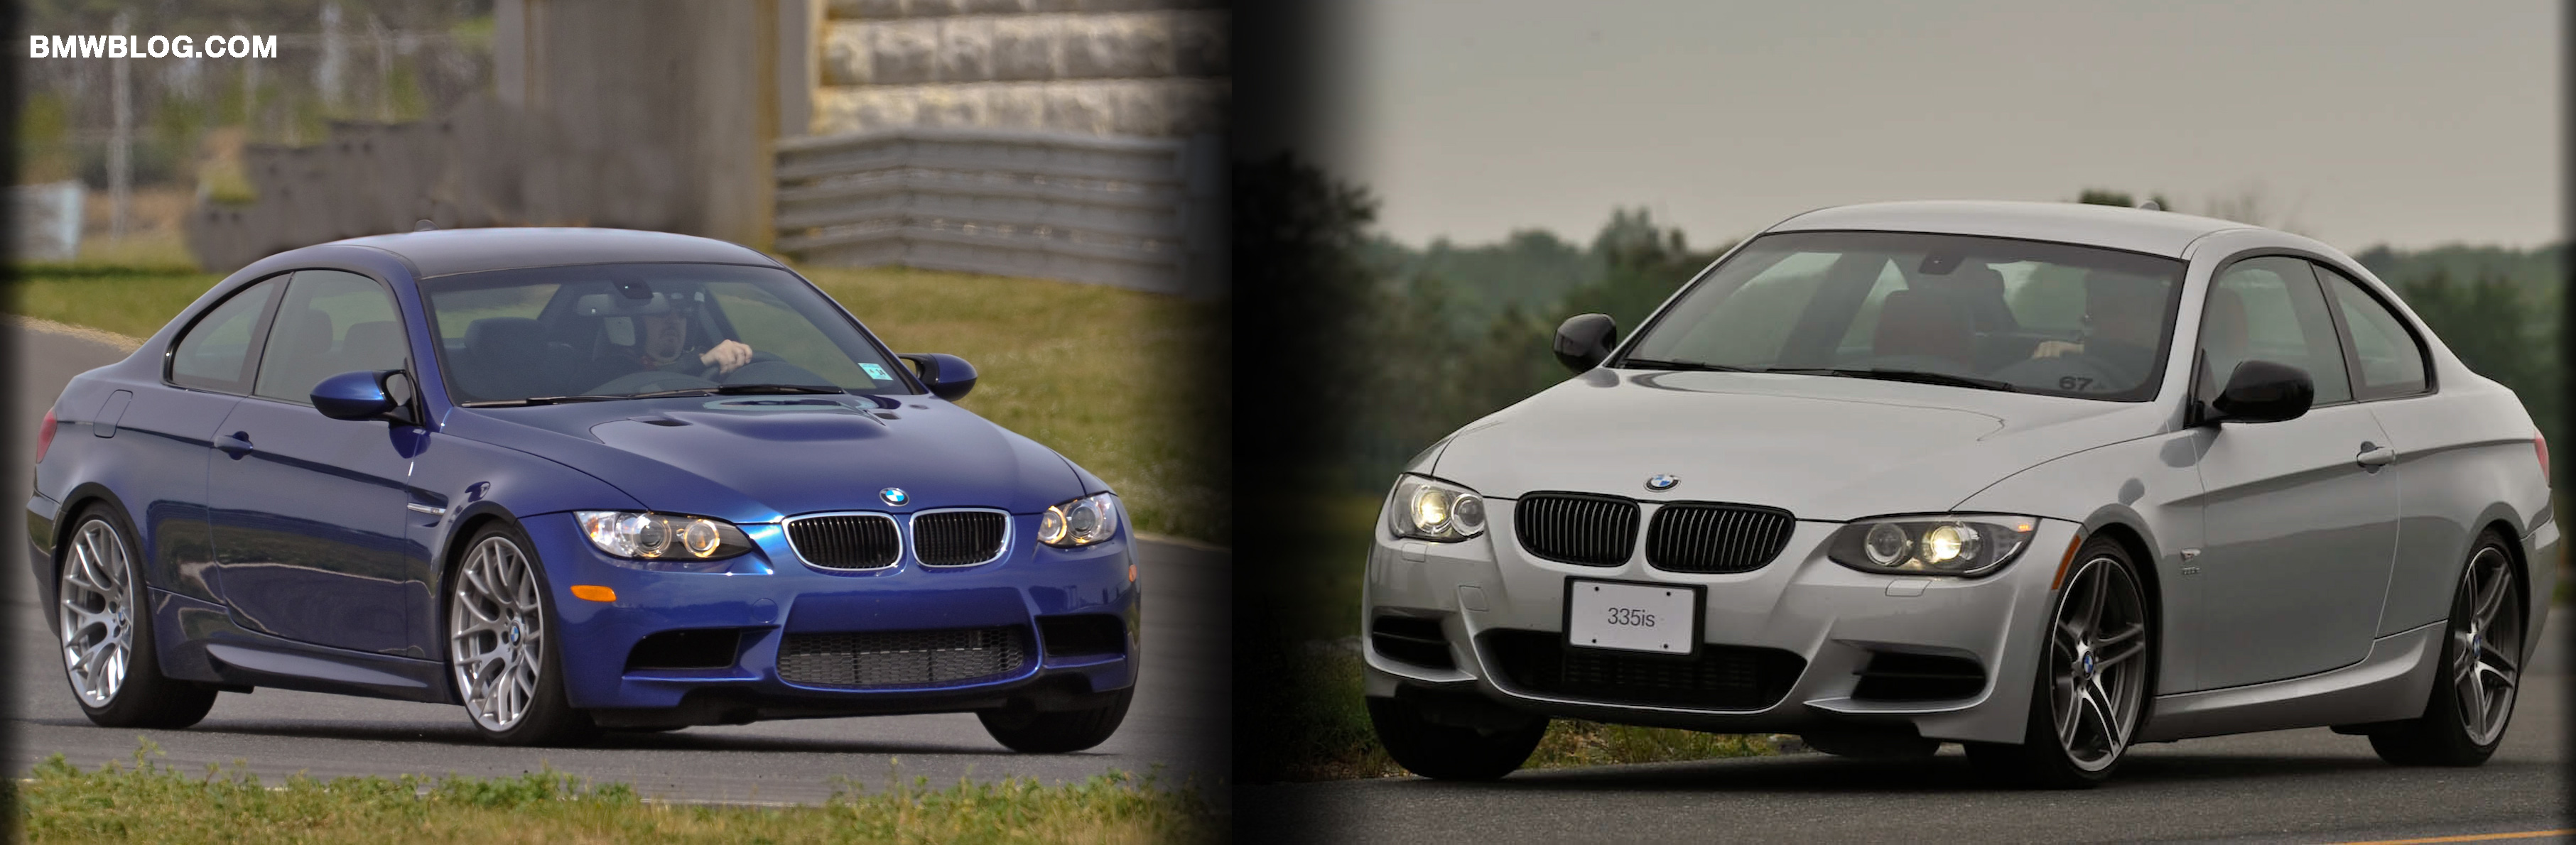 Bmwblog On Track Comparison M3 Vs 335is Bmw S Sibling Rivalry